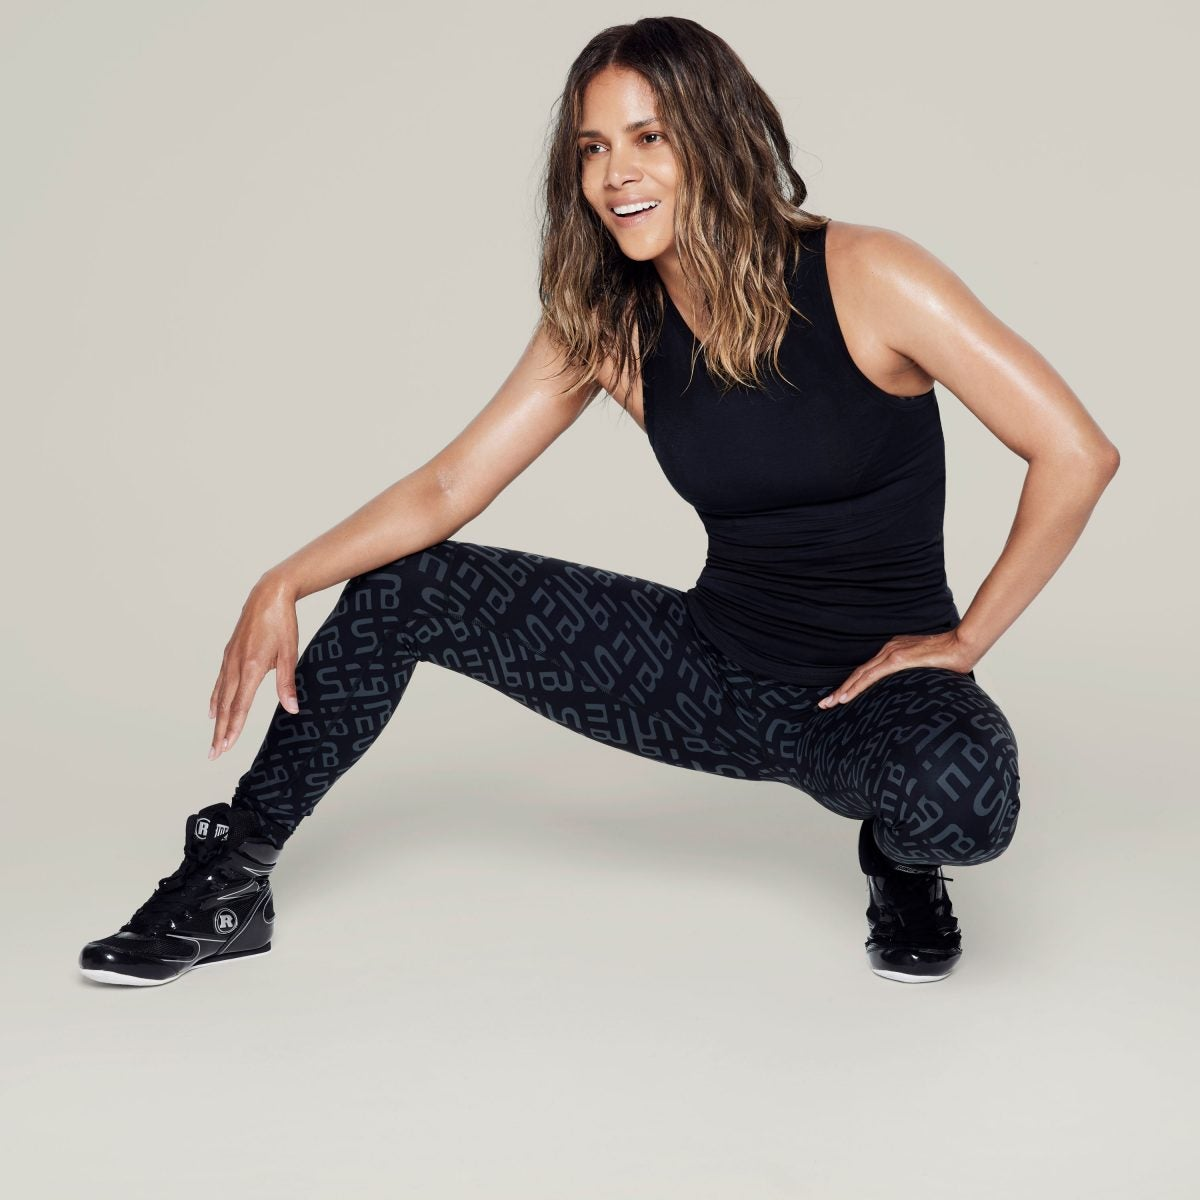 See Halle Berry's New Activewear Line With Sweaty Betty, Modeled Fiercely By The Star